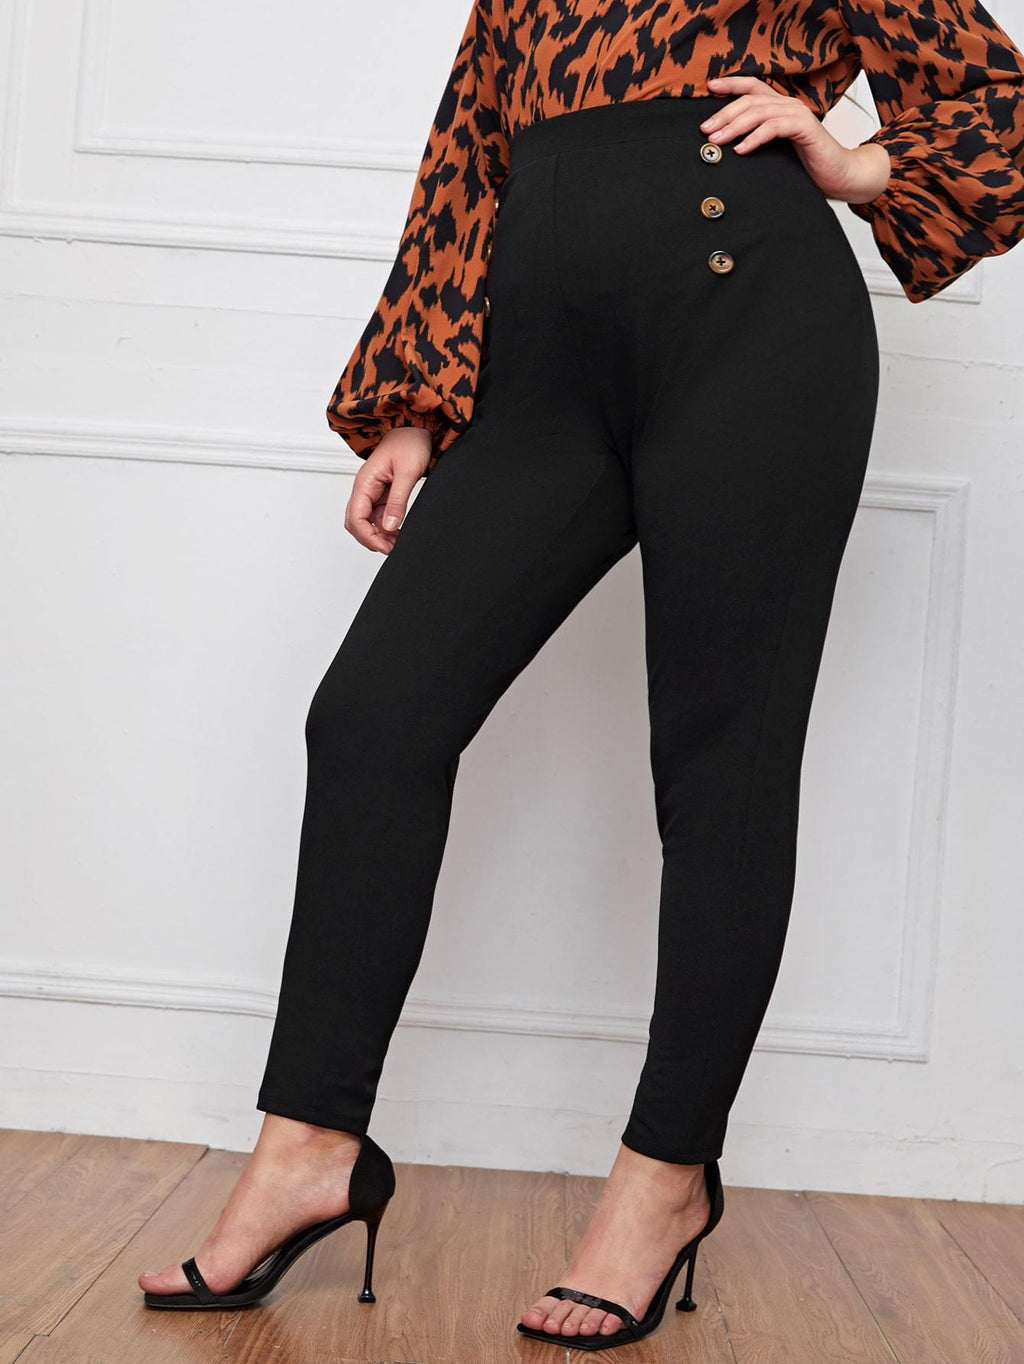 Plus Double Button Detail Skinny Pants - INS | Online Fashion Free Shipping Clothing, Dresses, Tops, Shoes